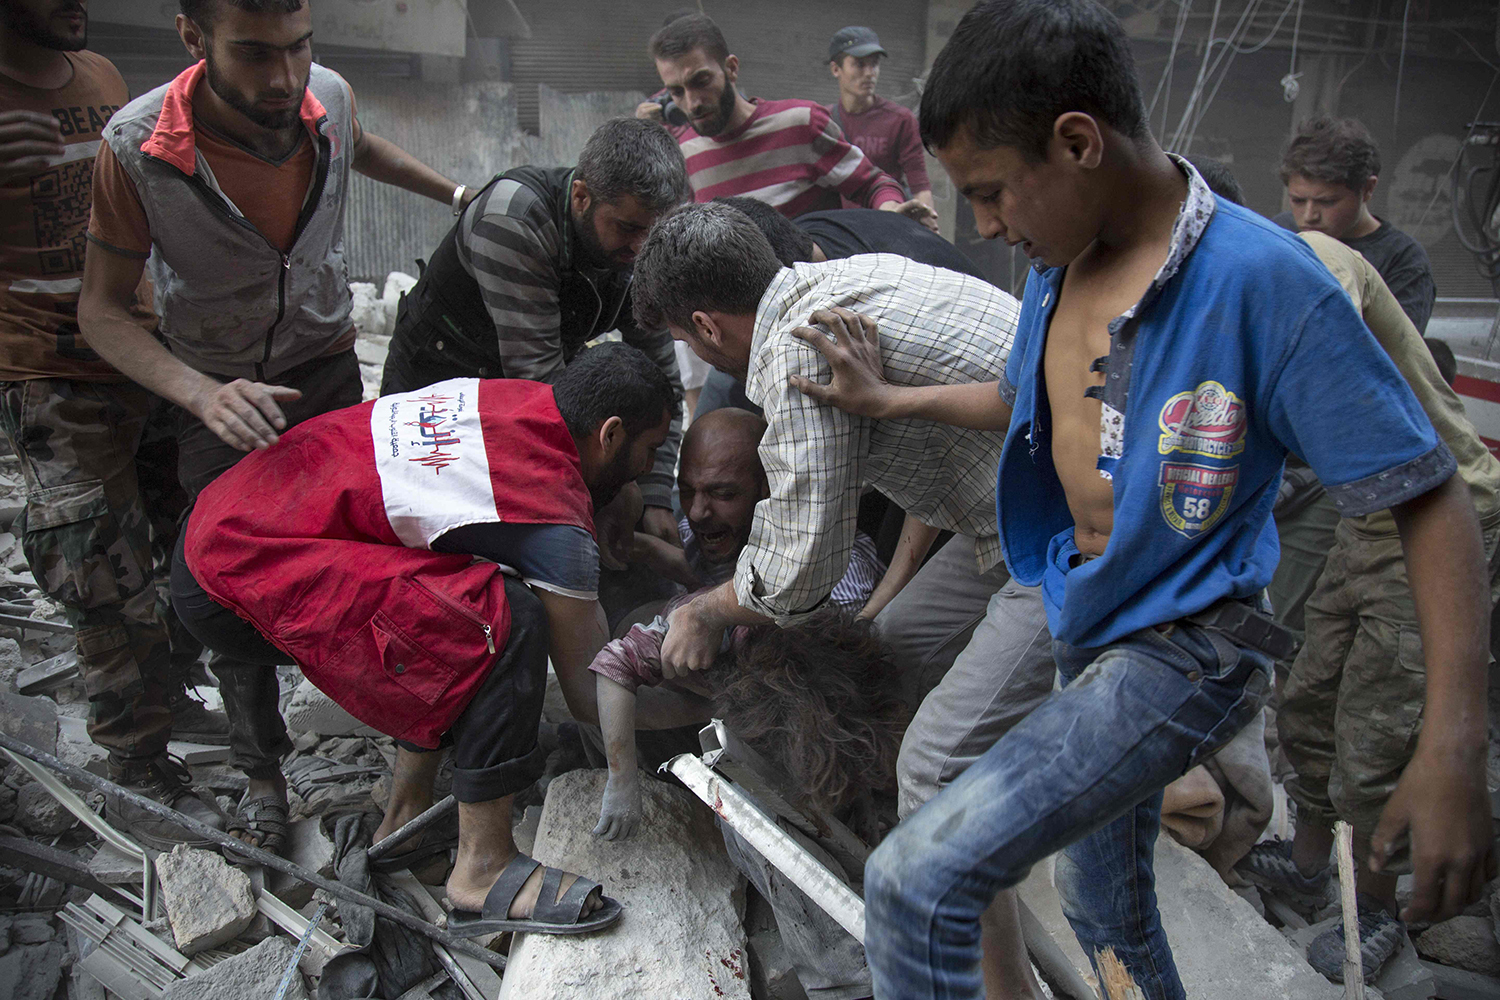 TOPSHOT - EDITORS NOTE: Graphic content / Syrians surround a man as he cries over the body of his child after she was pulled out from the rubble of a budling following government forces air strikes in the rebel held neighbourhood of Al-Shaar in Aleppo on September 27, 2016. Syria's army took control of a rebel-held district in central Aleppo, after days of heavy air strikes that have killed dozens and sparked allegations of war crimes. / AFP PHOTO / KARAM AL-MASRI / TT / kod 444